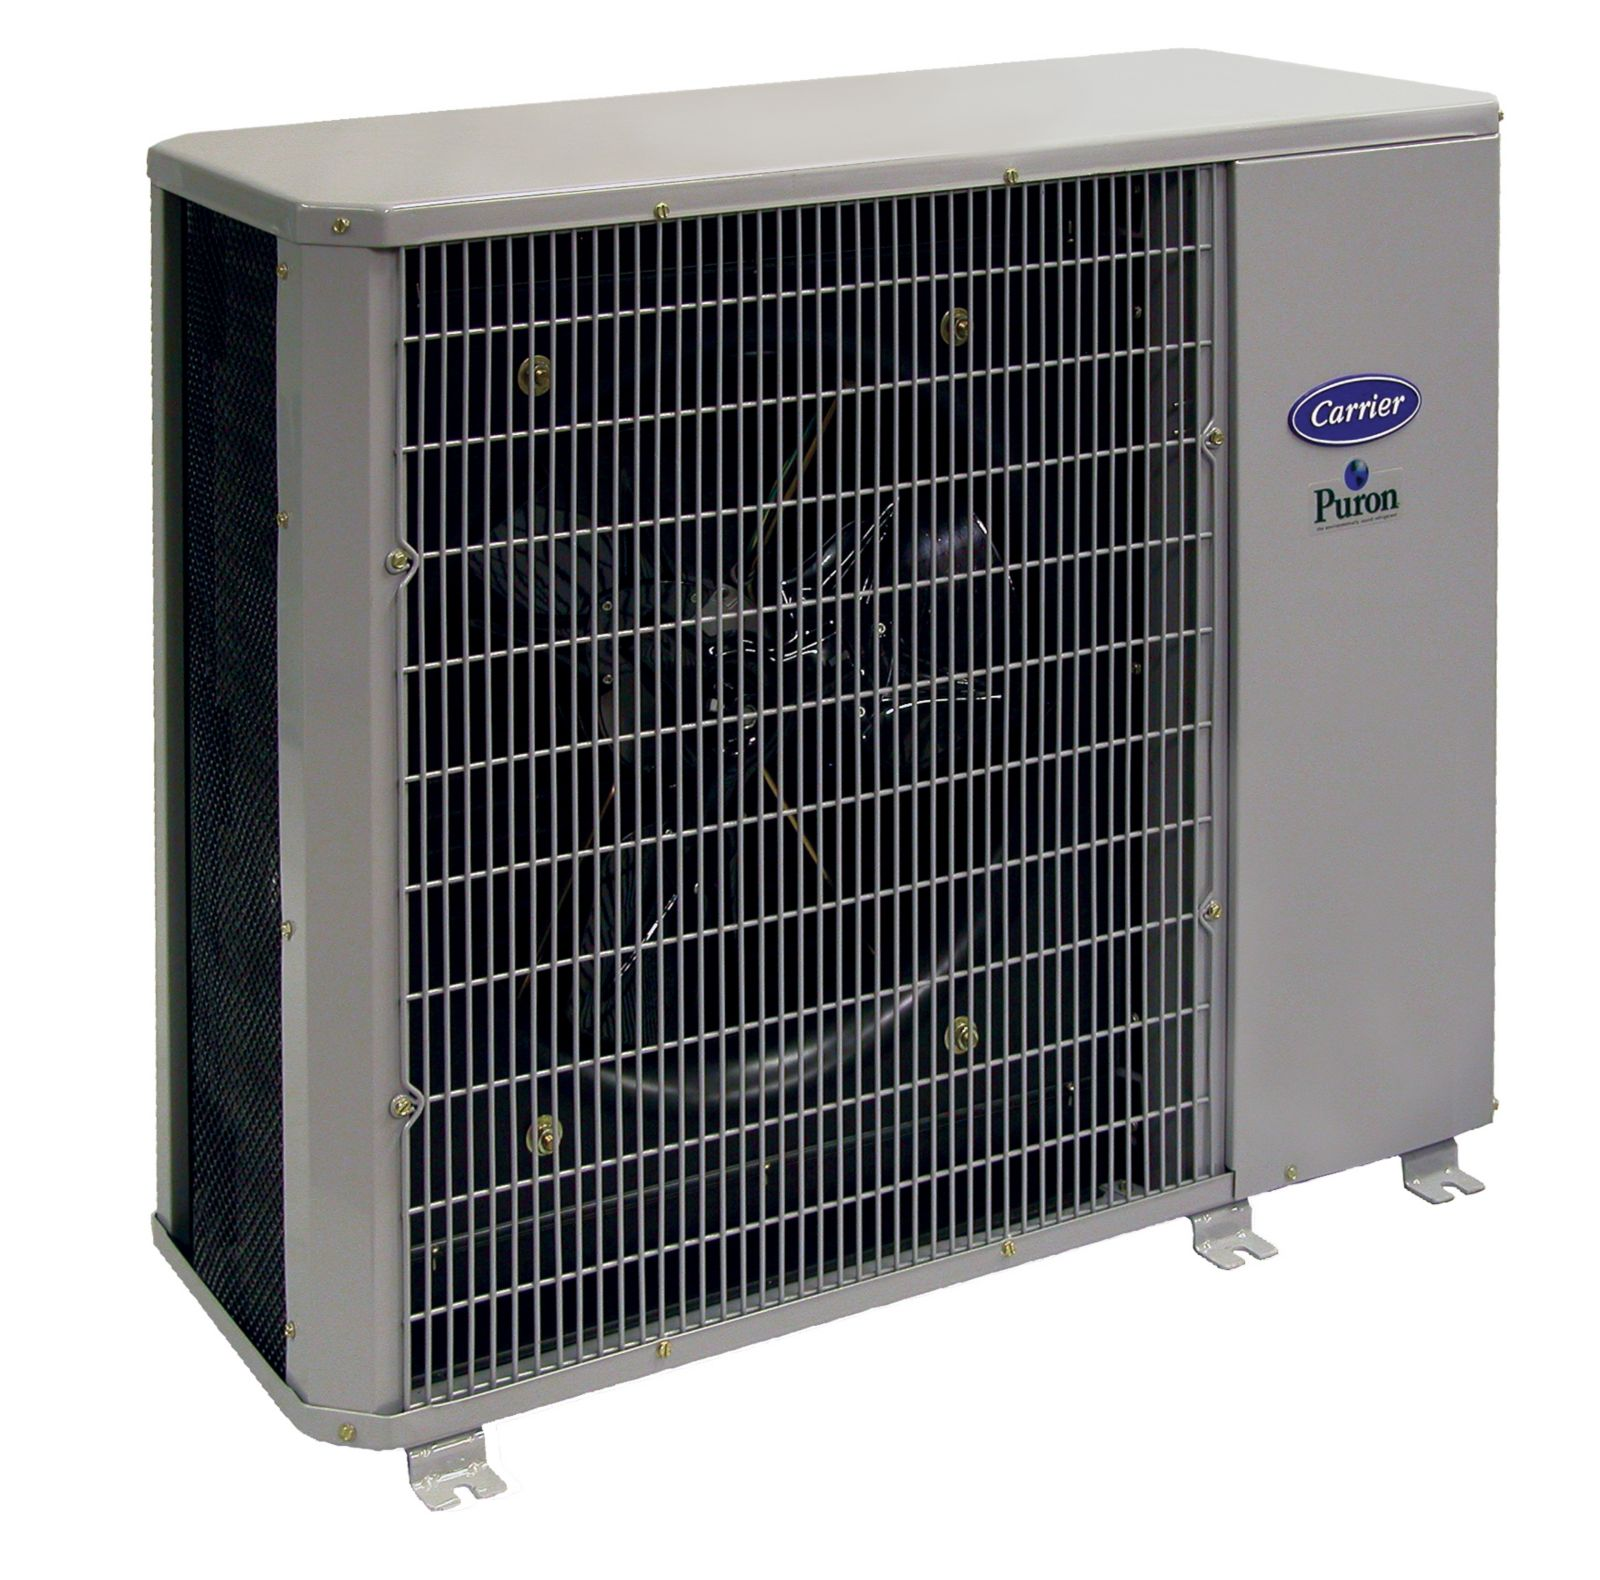 Carrier 3 Ton 14 SEER Horizontal Air Conditioner Carrier